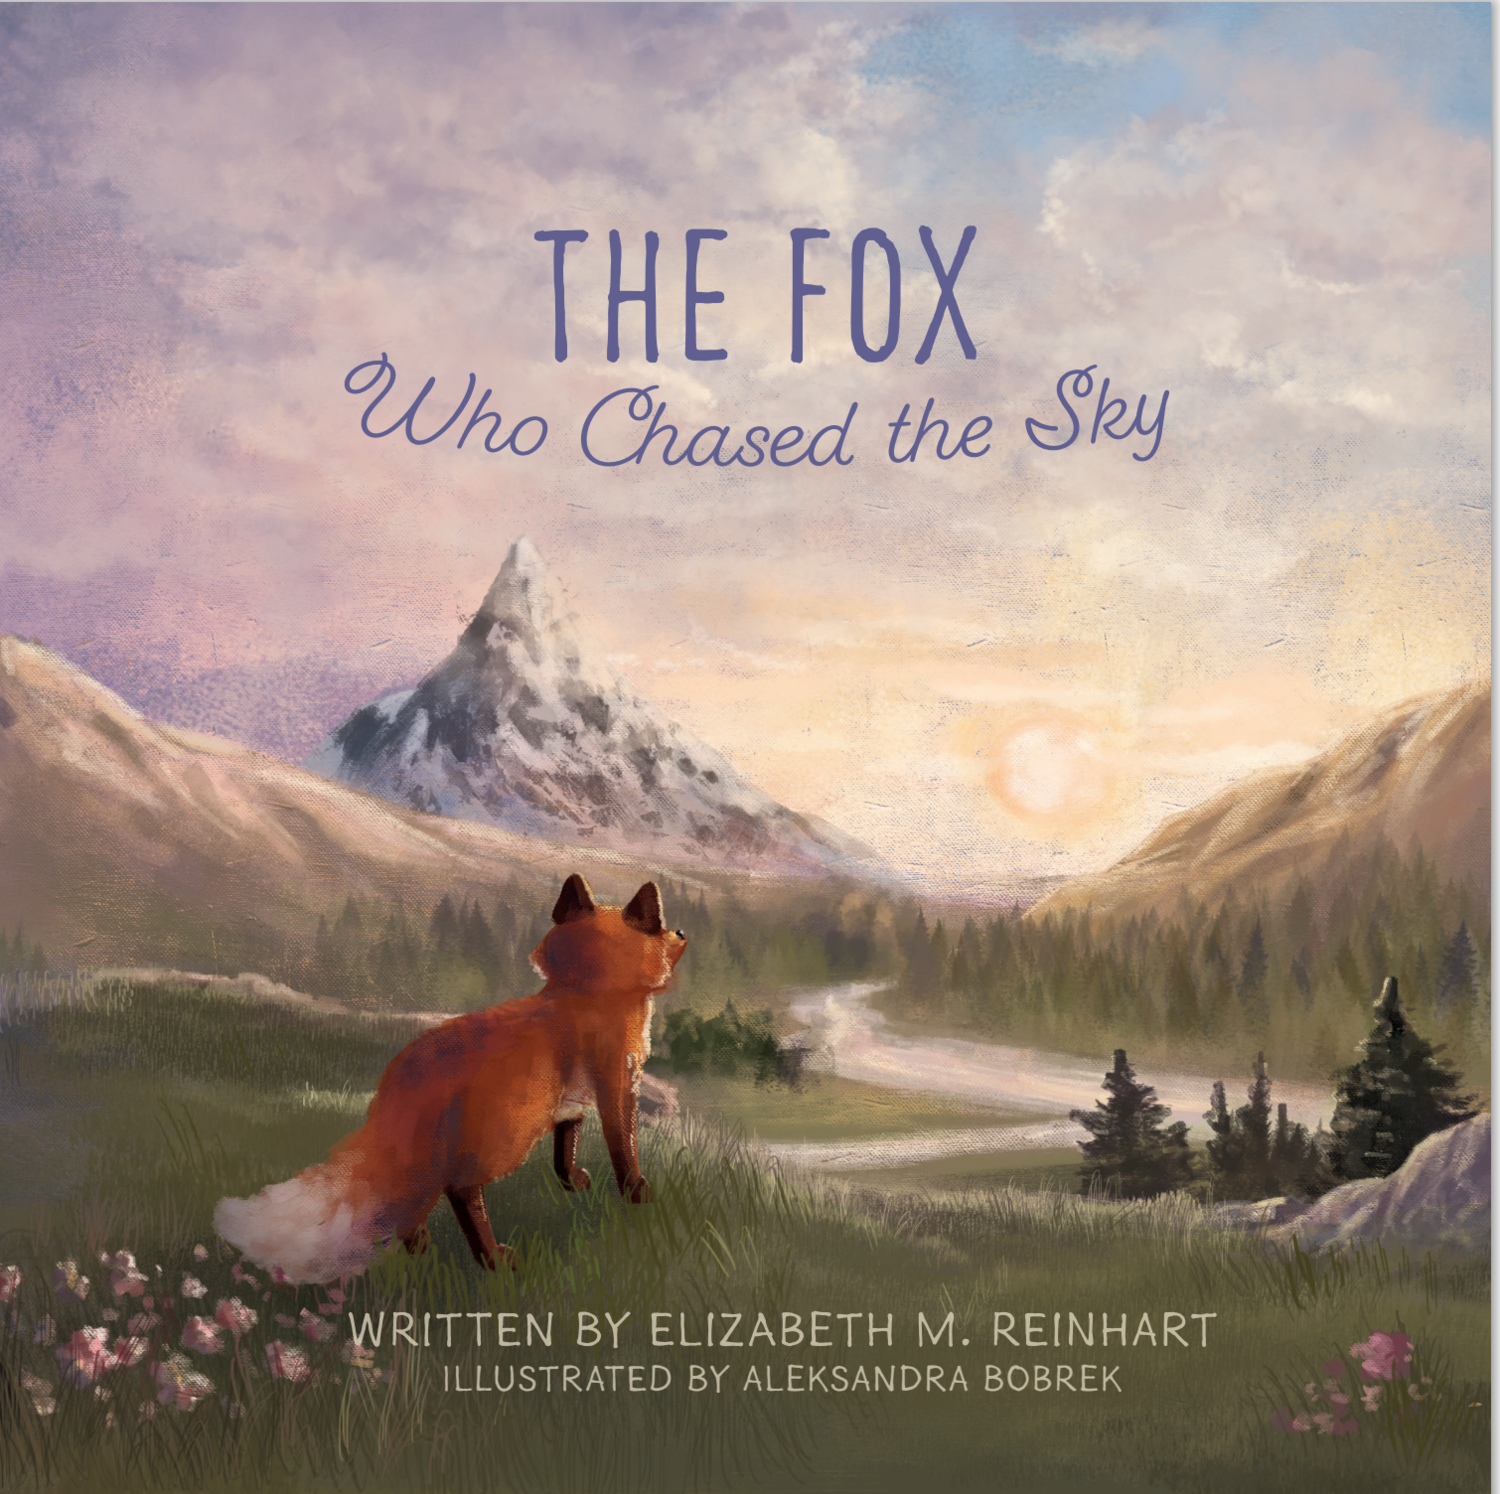 The Fox Who Chased the Sky